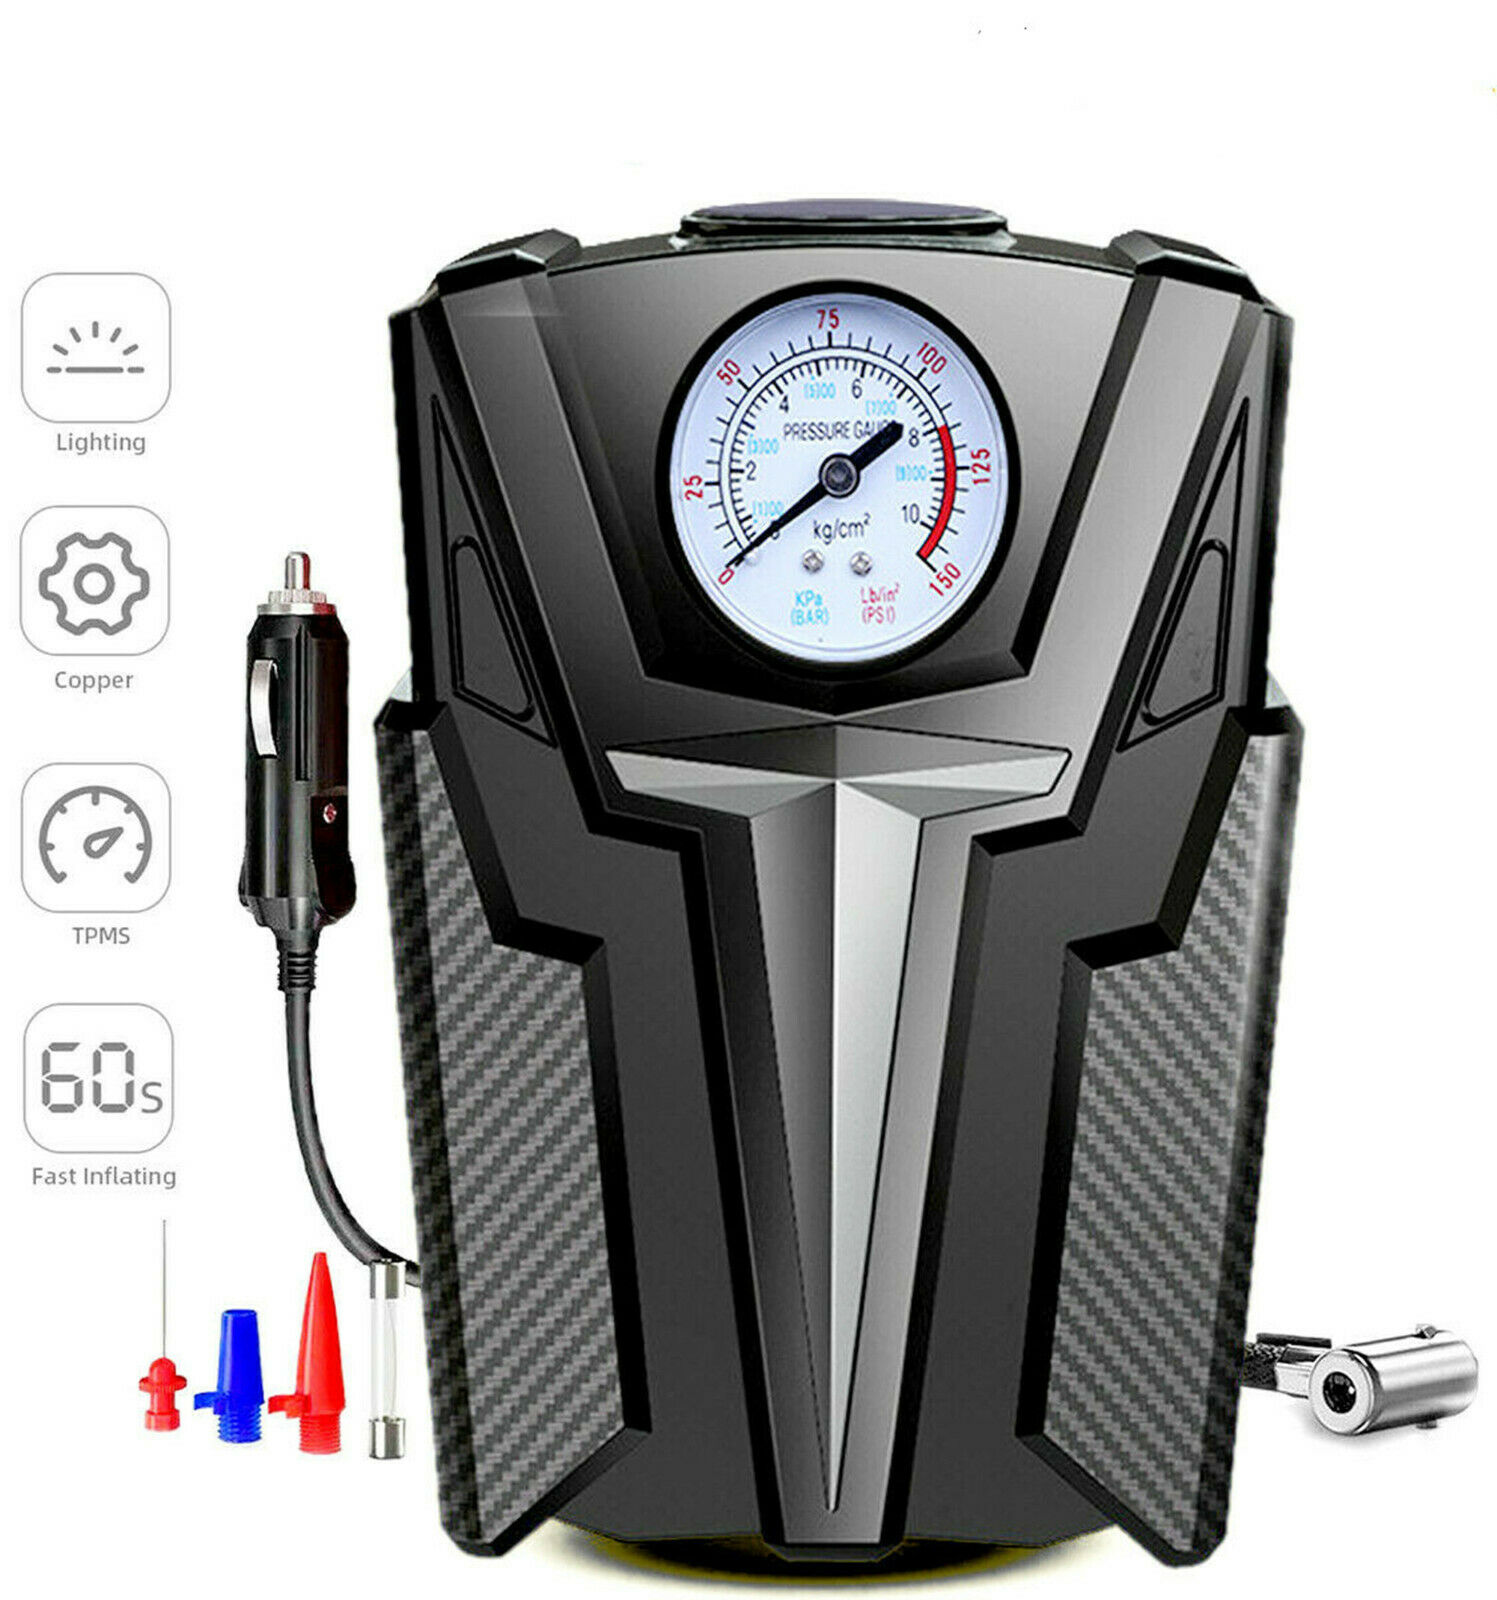 Tire Inflator Car Air Pump Compressor Electric Portable Auto 12V DC Volt 150 PSI. Available Now for 14.89